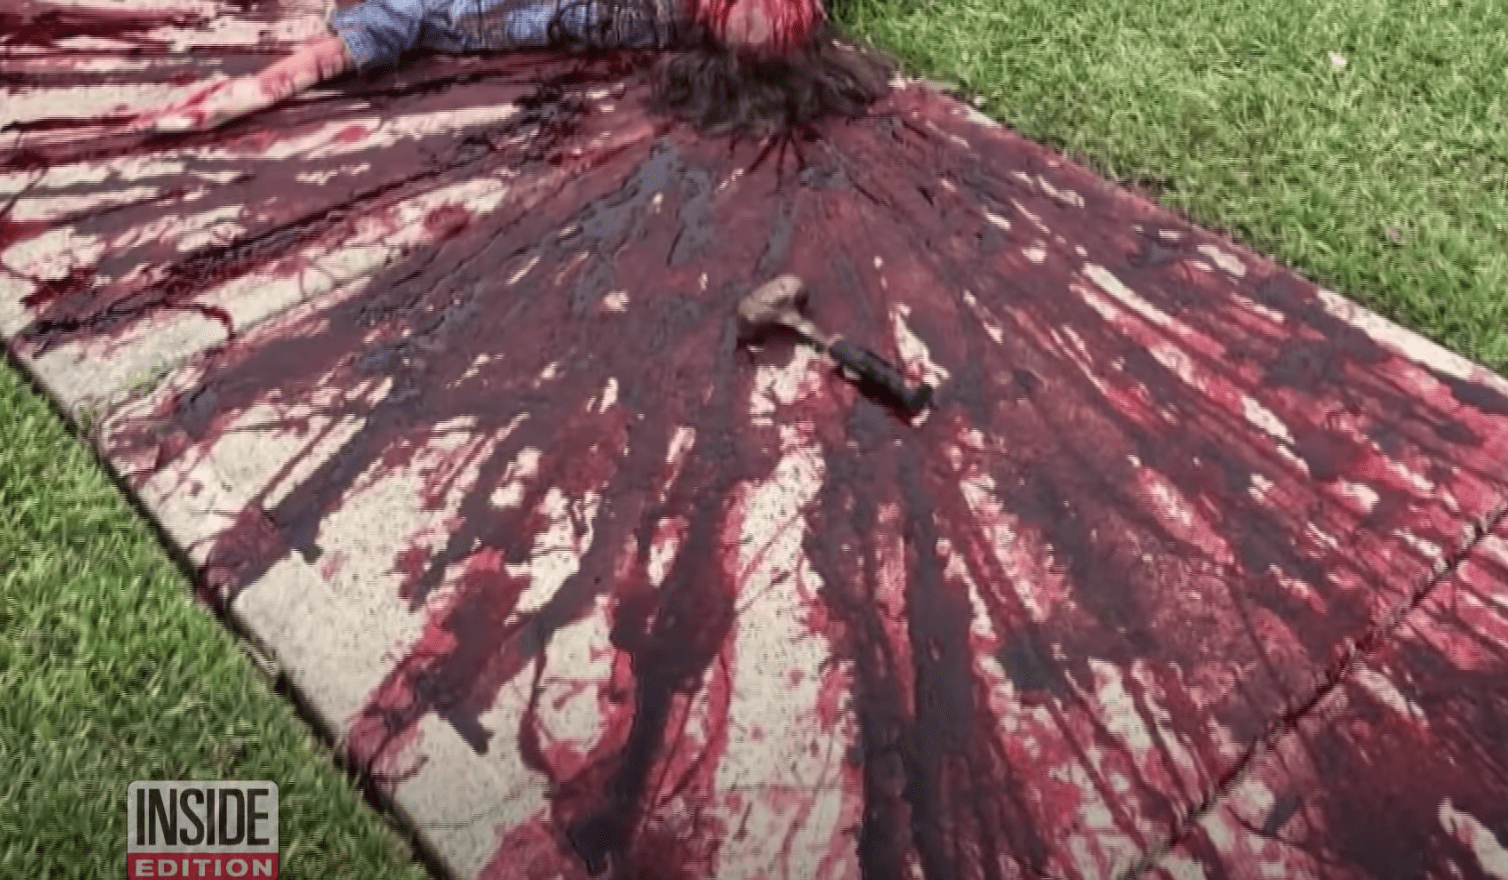 Man rolls out a Halloween display so gory and horrifying people keep calling the police on him